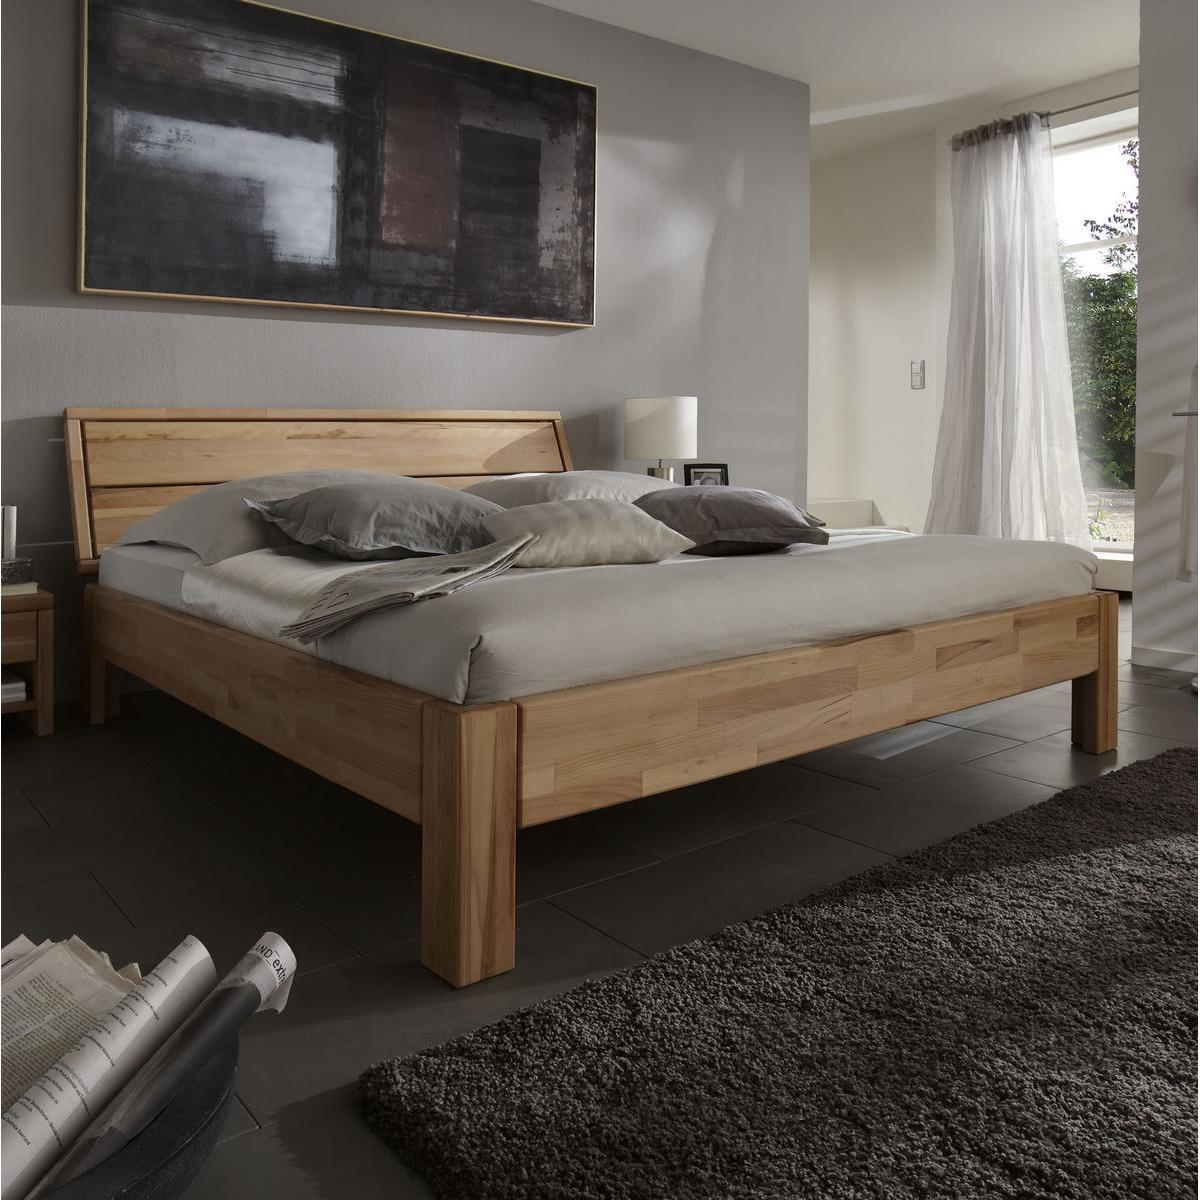 einzelbett 120x200 stunning bett x x wei c f und wie sie ihr zuhause design ideen with. Black Bedroom Furniture Sets. Home Design Ideas